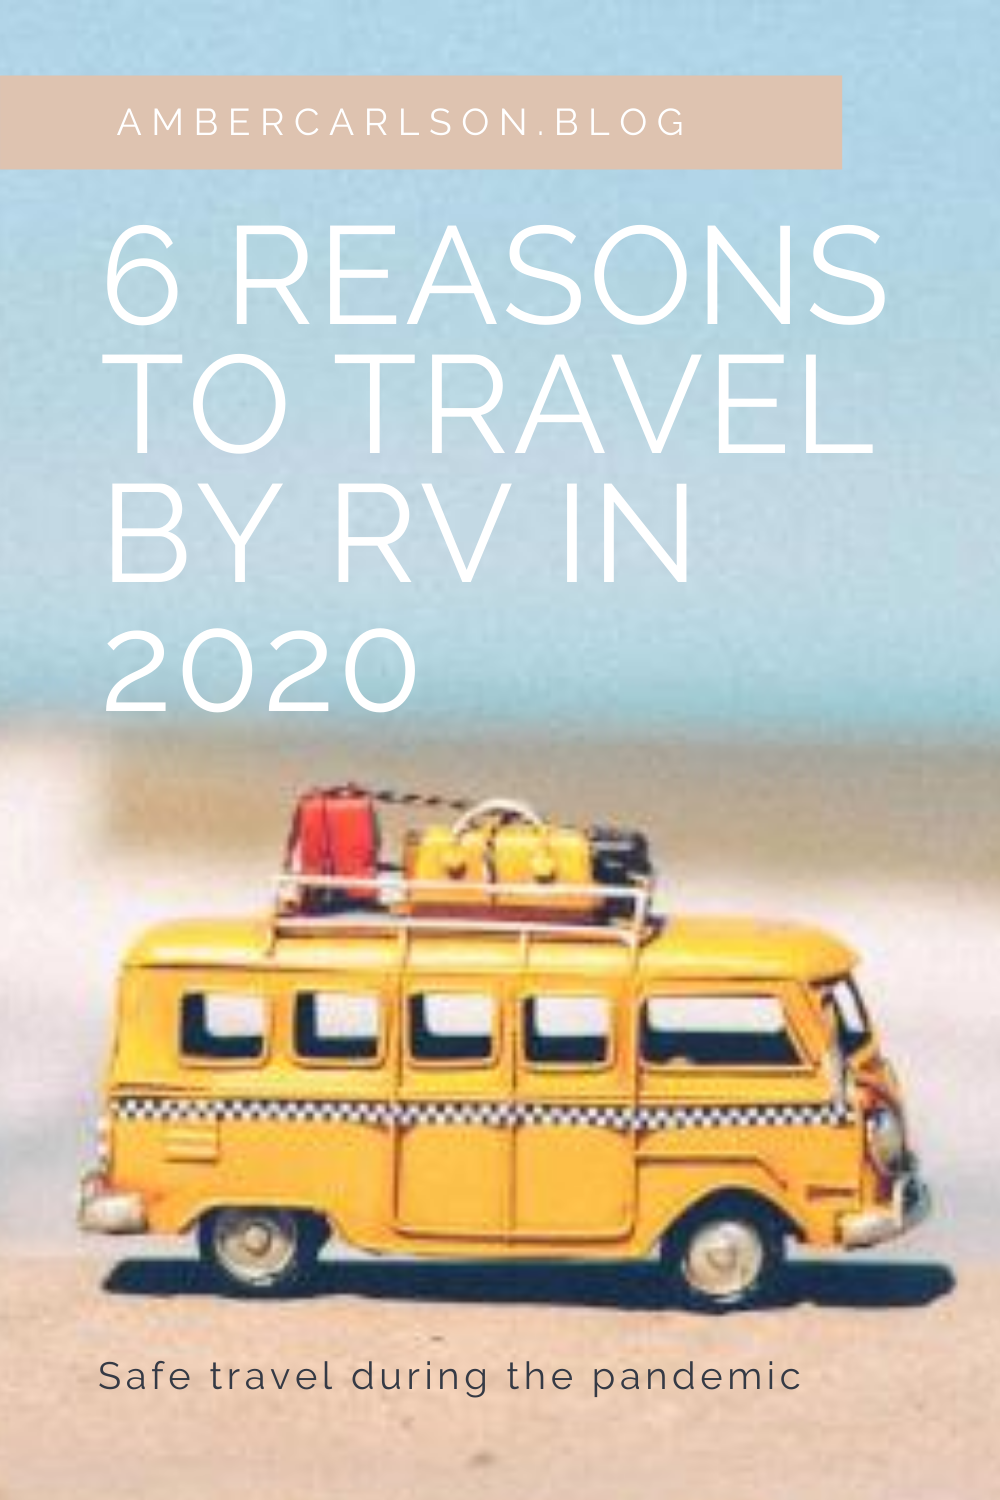 Itching to get out and see the world while still being safe? Here are reasons to travel by RV in the time of coronavirus. #travel #roadtrip #wanderlust